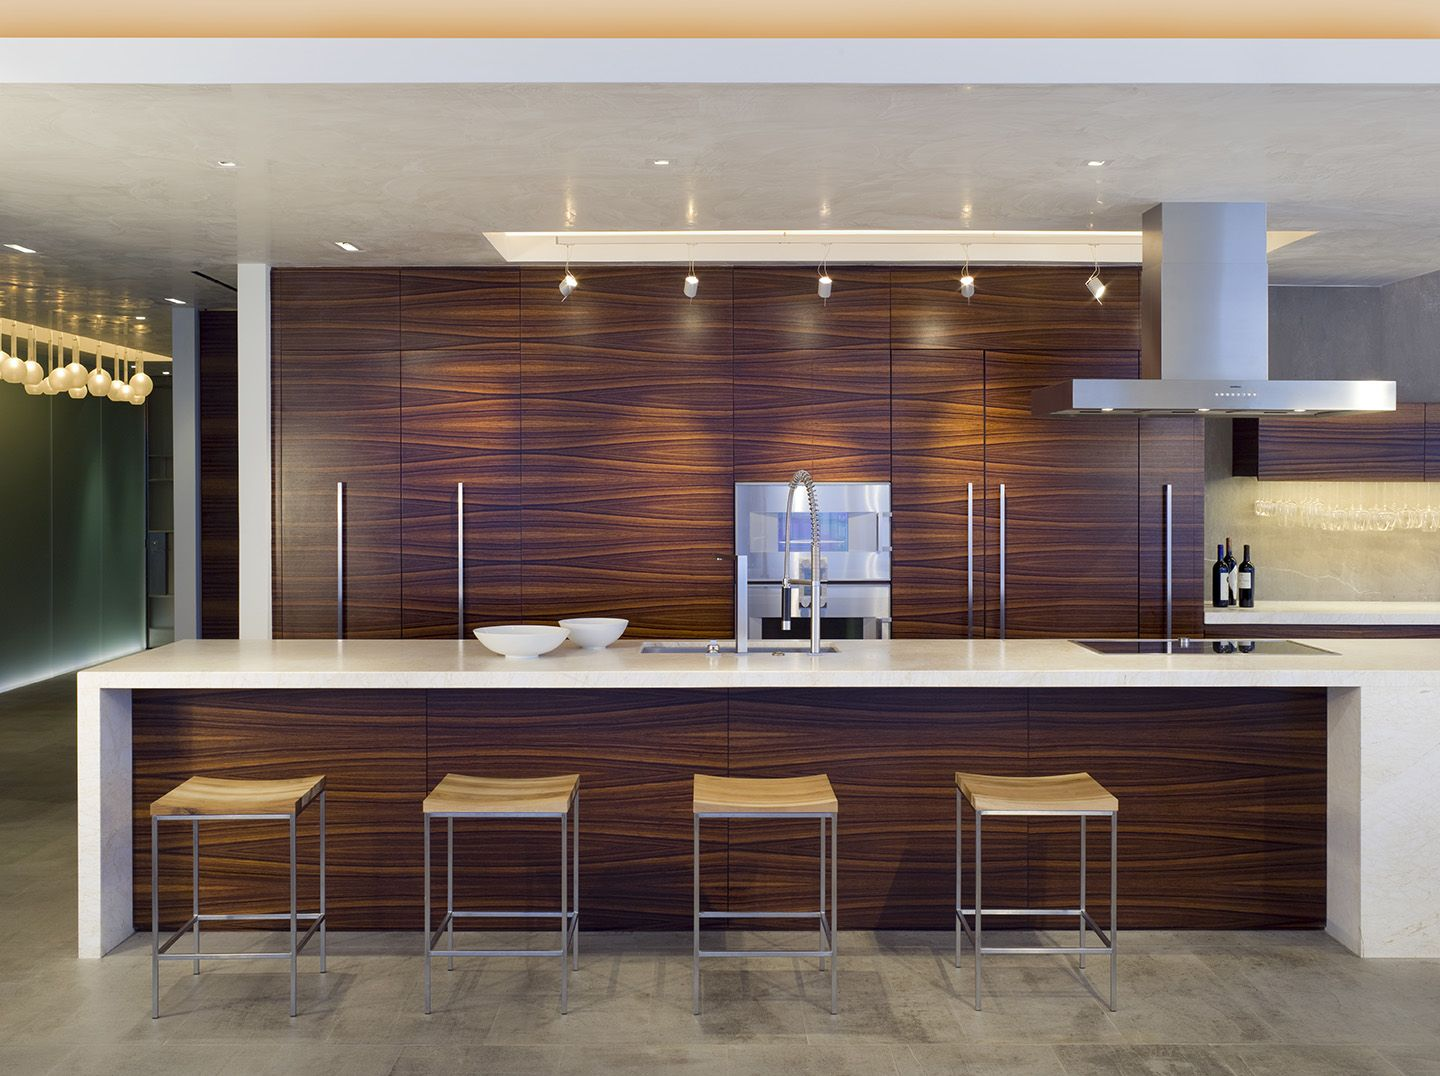 Cocina  Cocina  Islas  Pinterest  Kitchen Design And Kitchens Simple Kitchen Cabinets Miami Design Inspiration